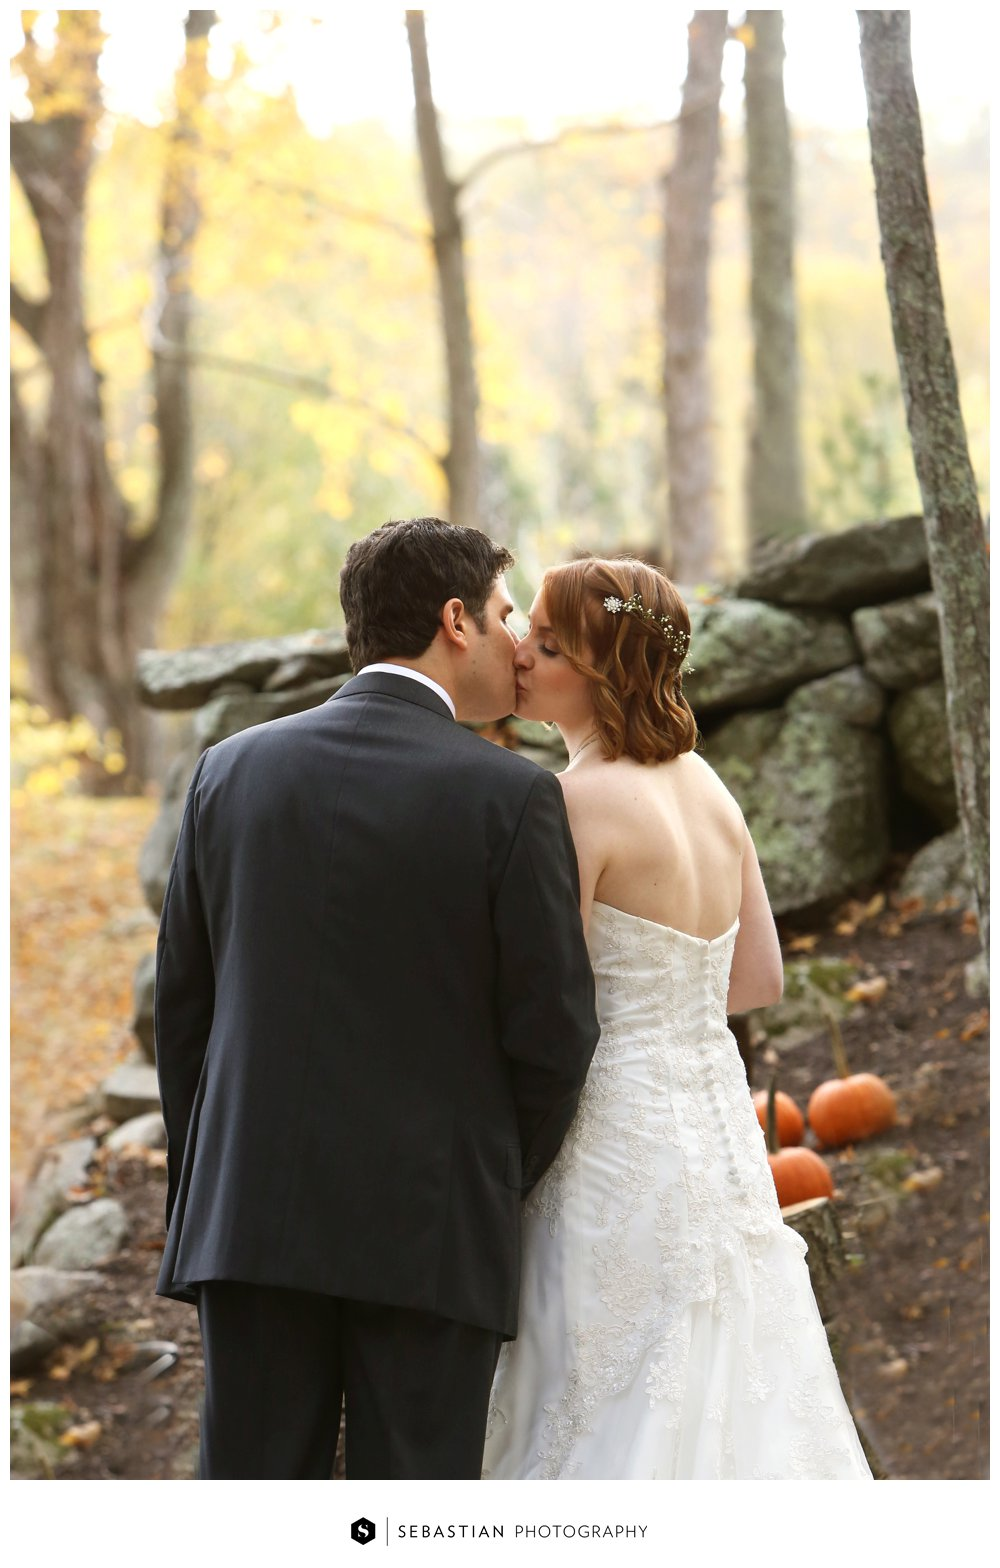 Sebastian Photography_CT Wedding_CT Wedding Photographer_Fall Wedding_Wrights Mill Farm Wedding_7039.jpg